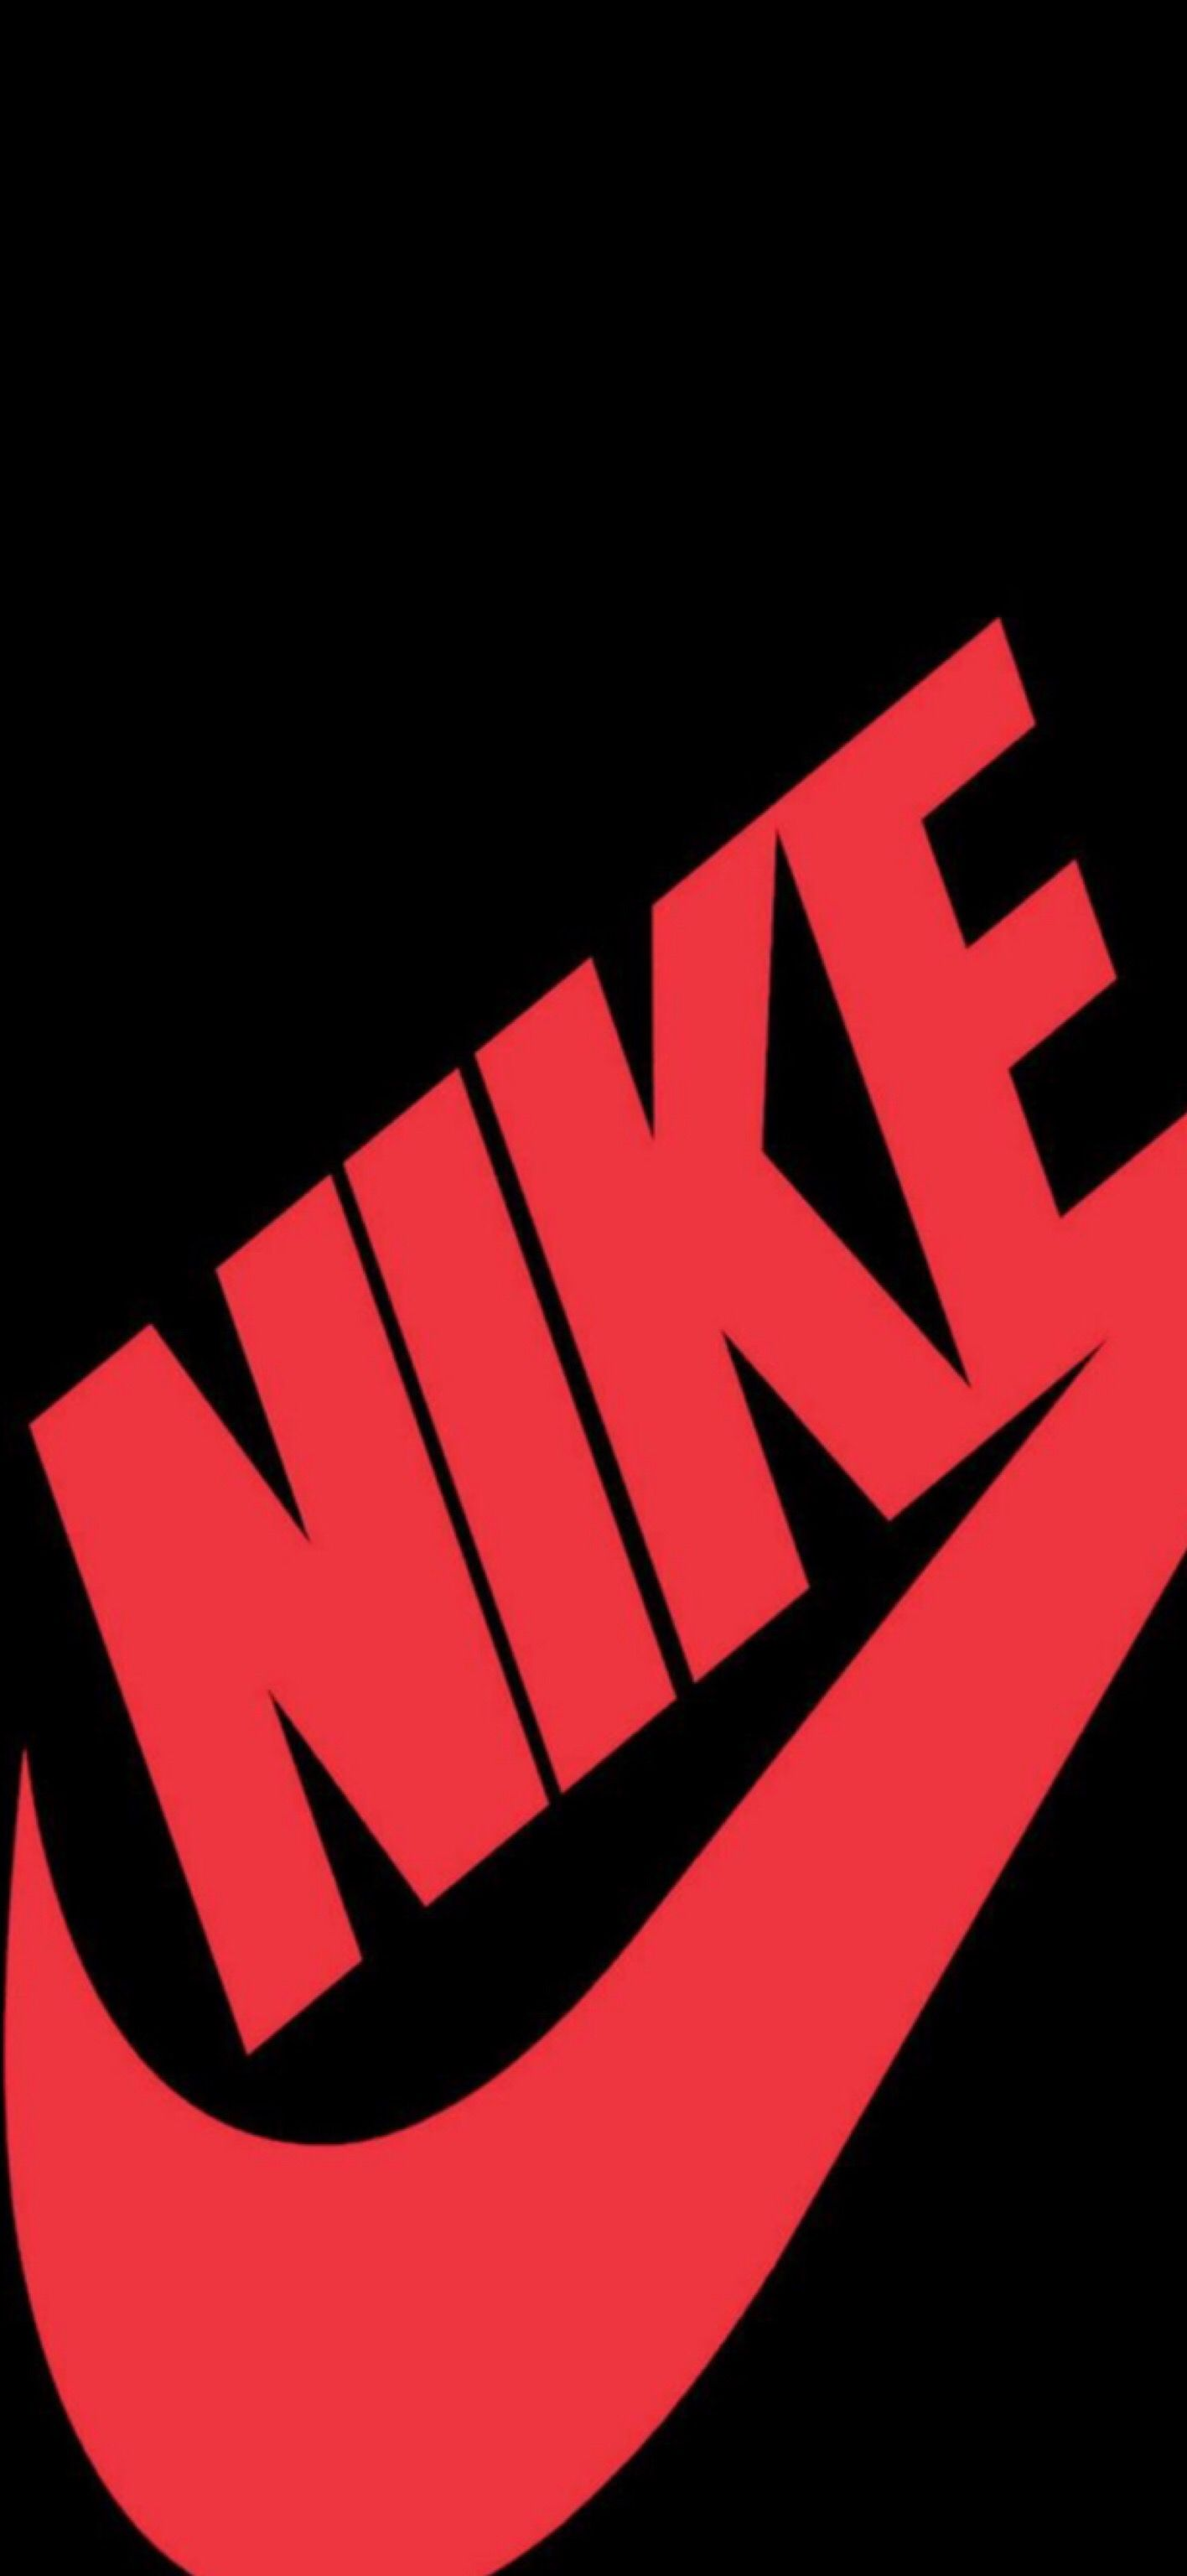 Wallpaper Iphone X Nike Logo Nike Logo Wallpapers Nike